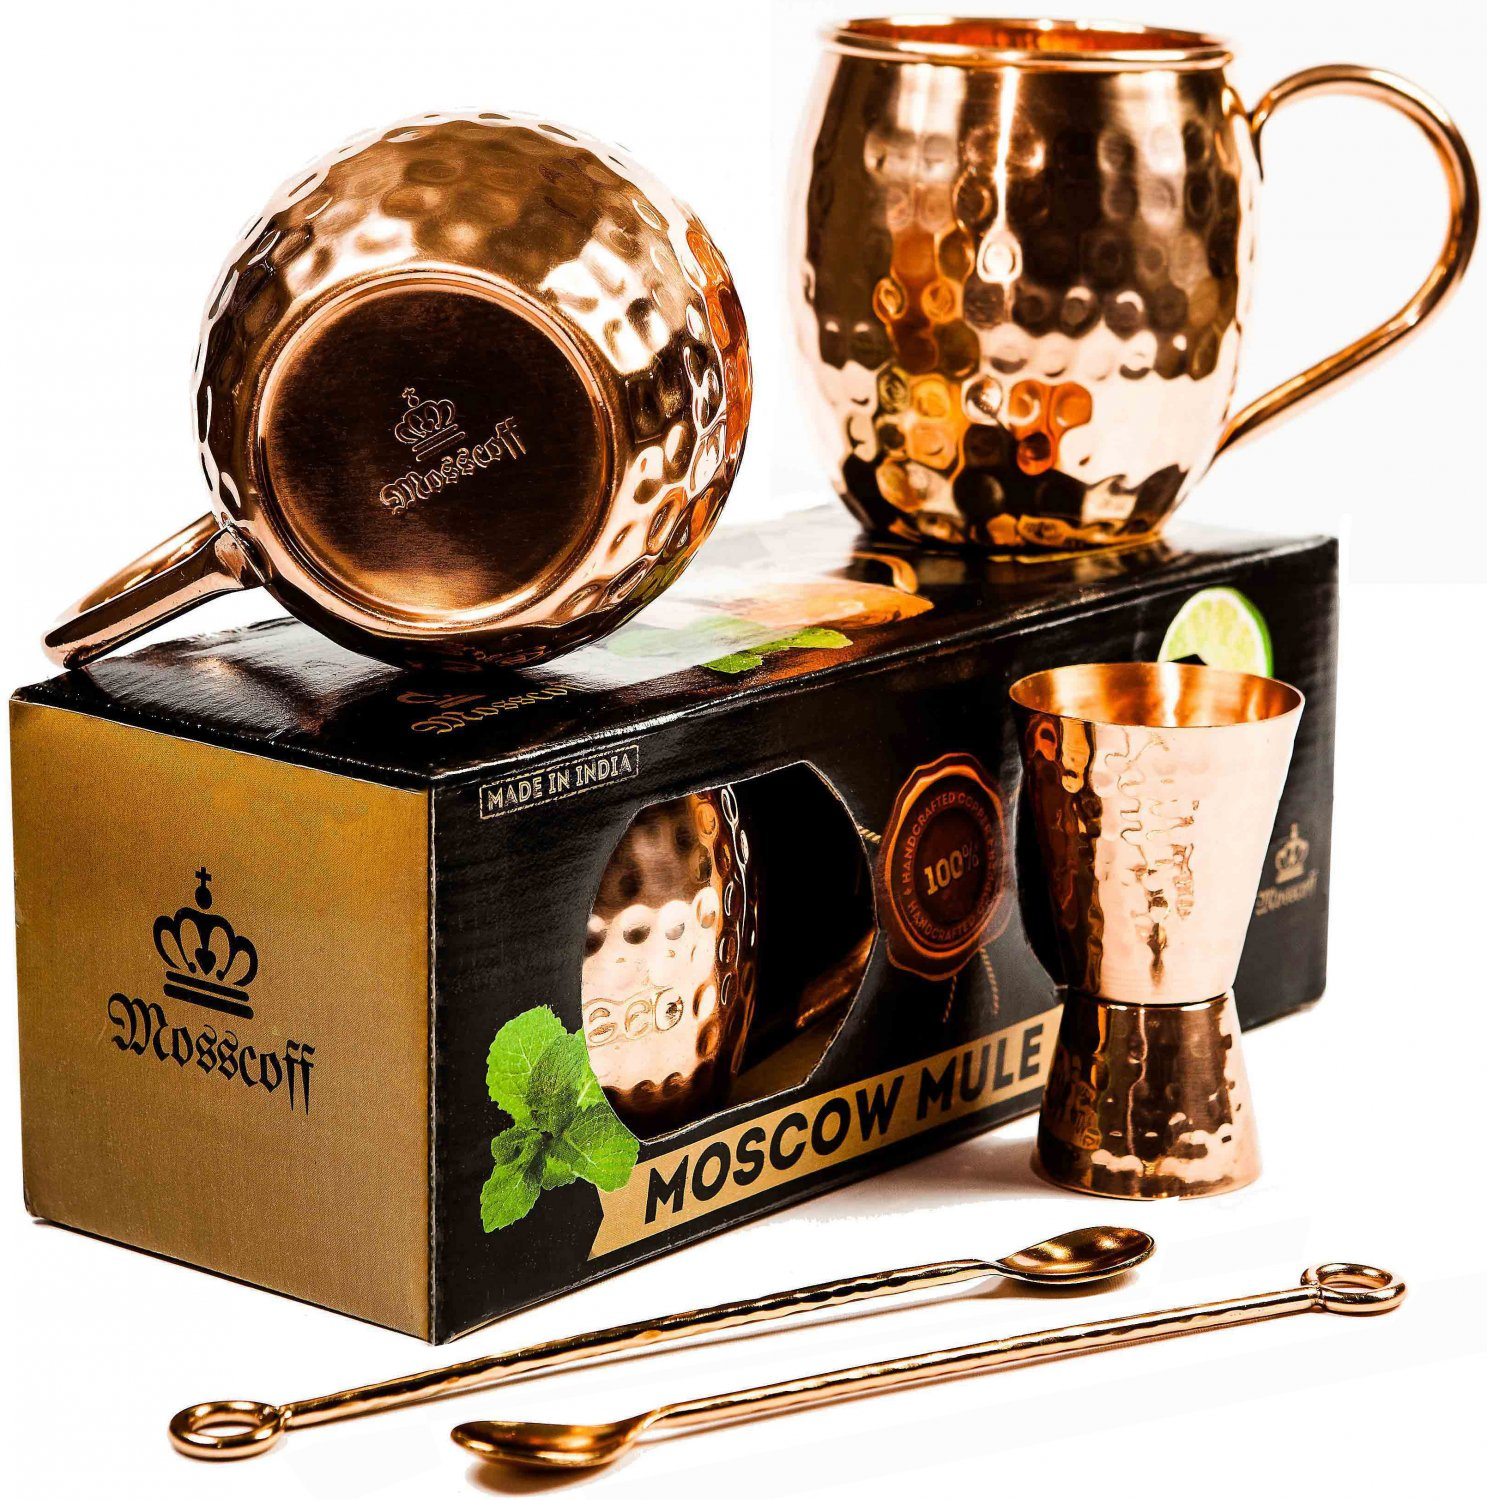 Moscow Mule copper mugs gift set by Mosscoff.